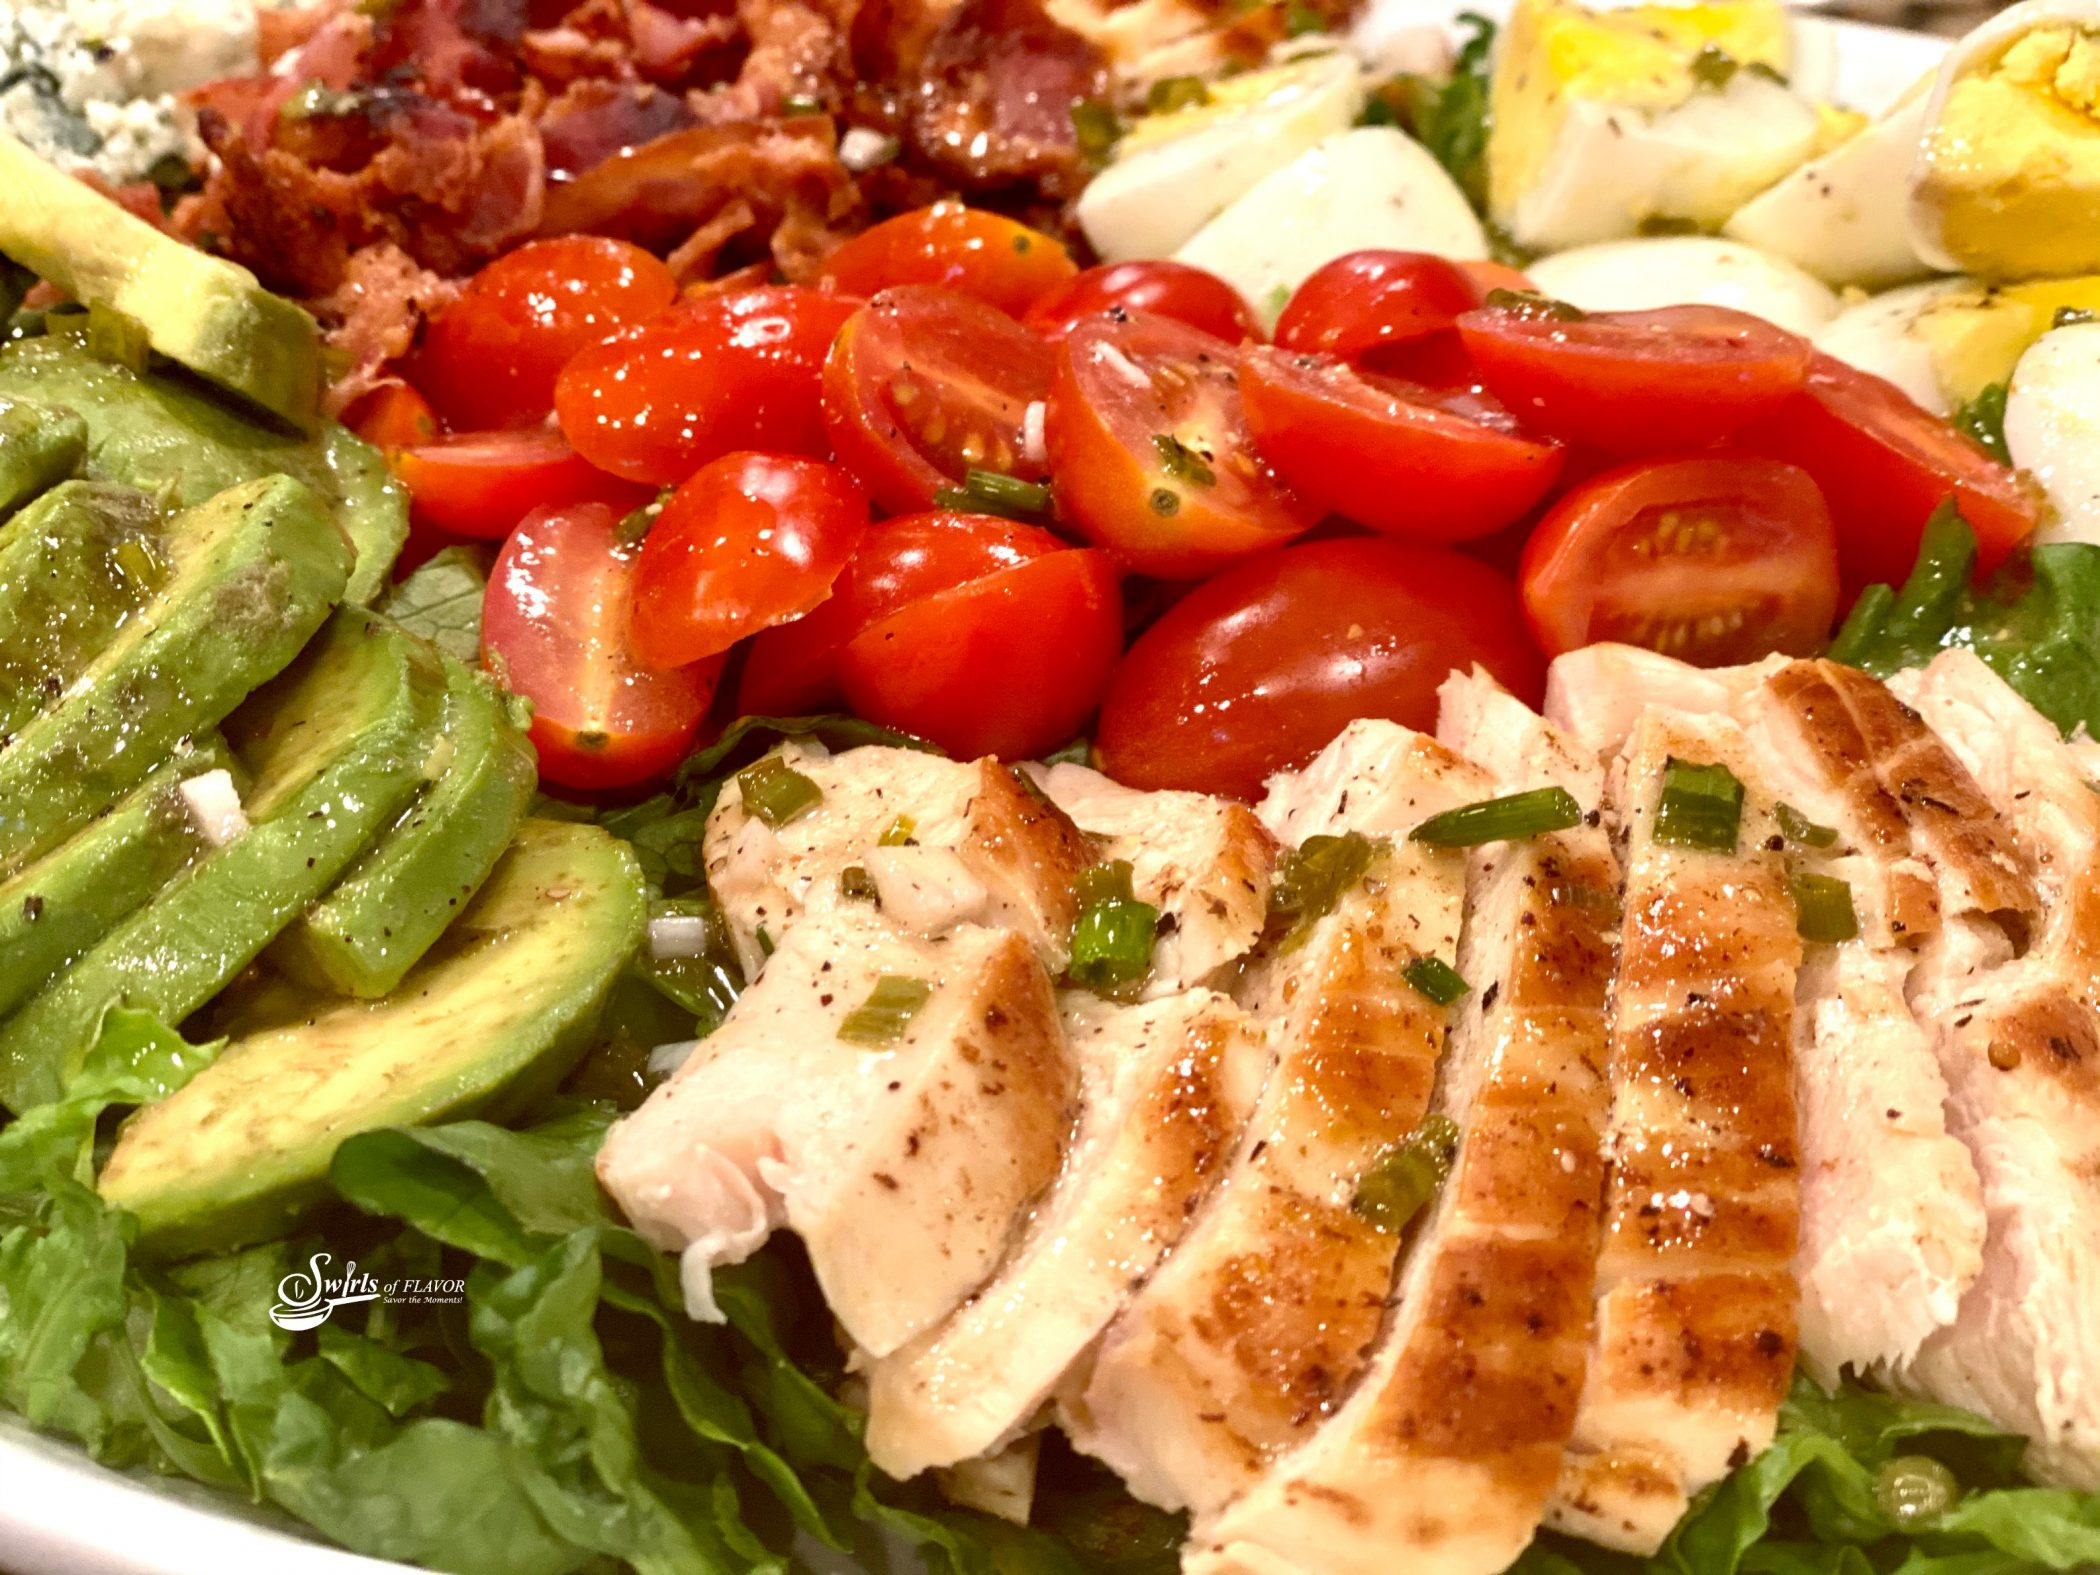 Close up of ingredients in a Cobb Salad, chicken, avocado, tomatoes, bacon and eggs